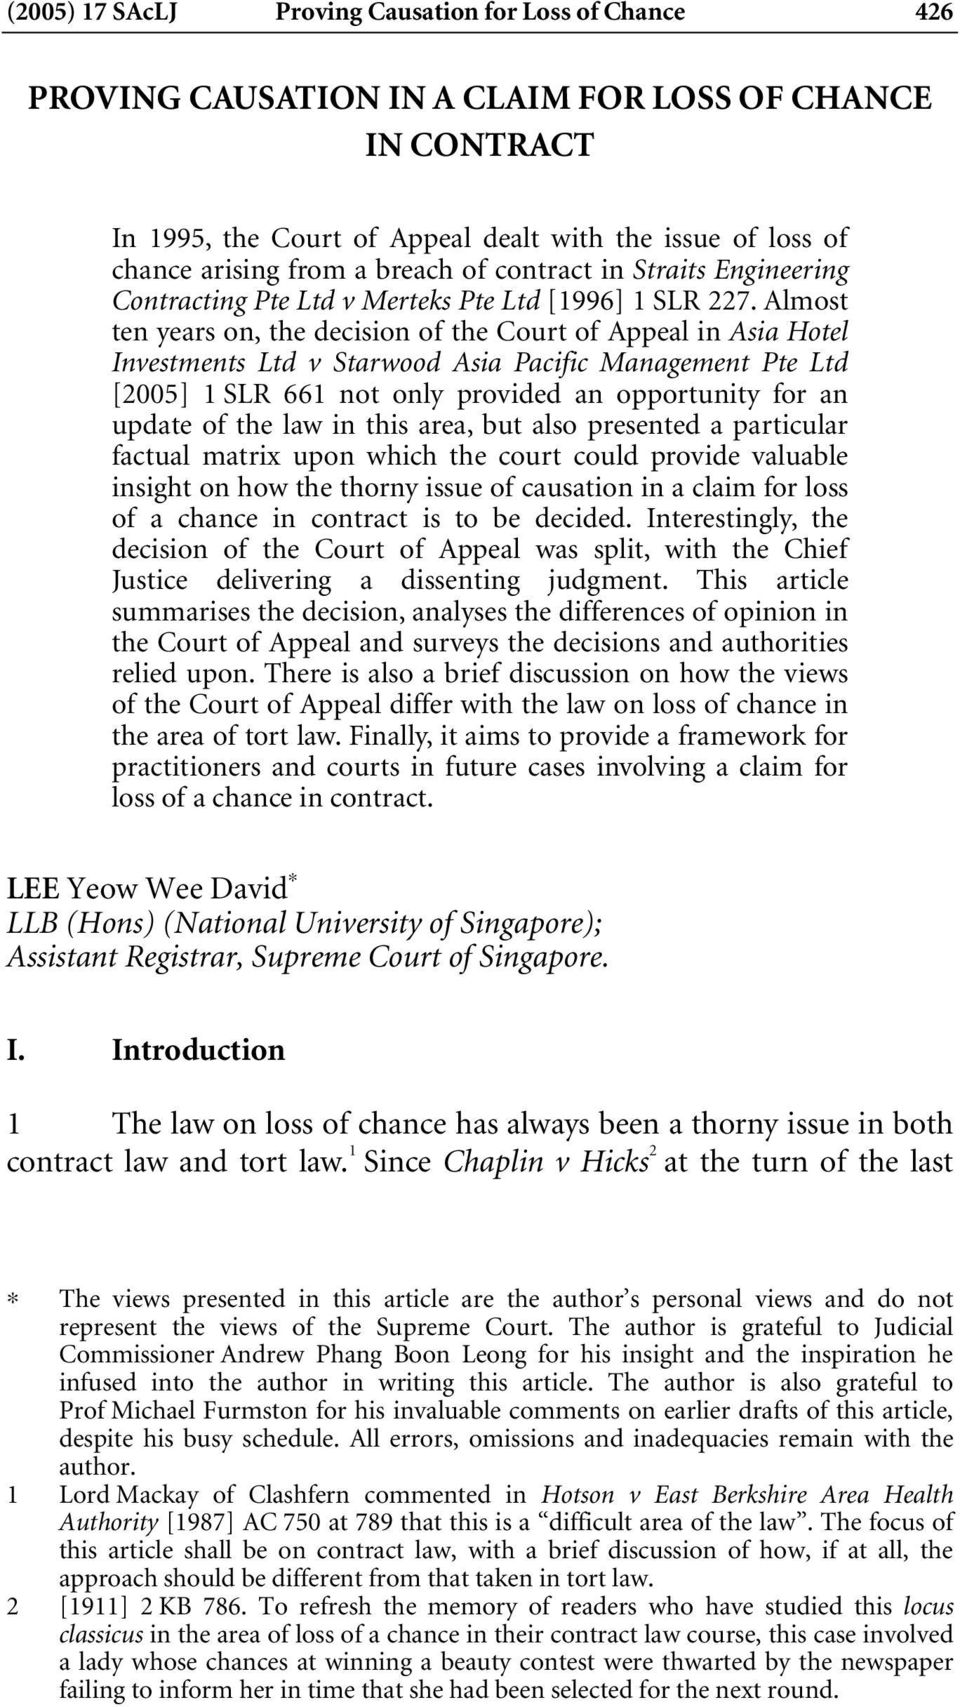 Almost ten years on, the decision of the Court of Appeal in Asia Hotel Investments Ltd v Starwood Asia Pacific Management Pte Ltd [2005] 1 SLR 661 not only provided an opportunity for an update of